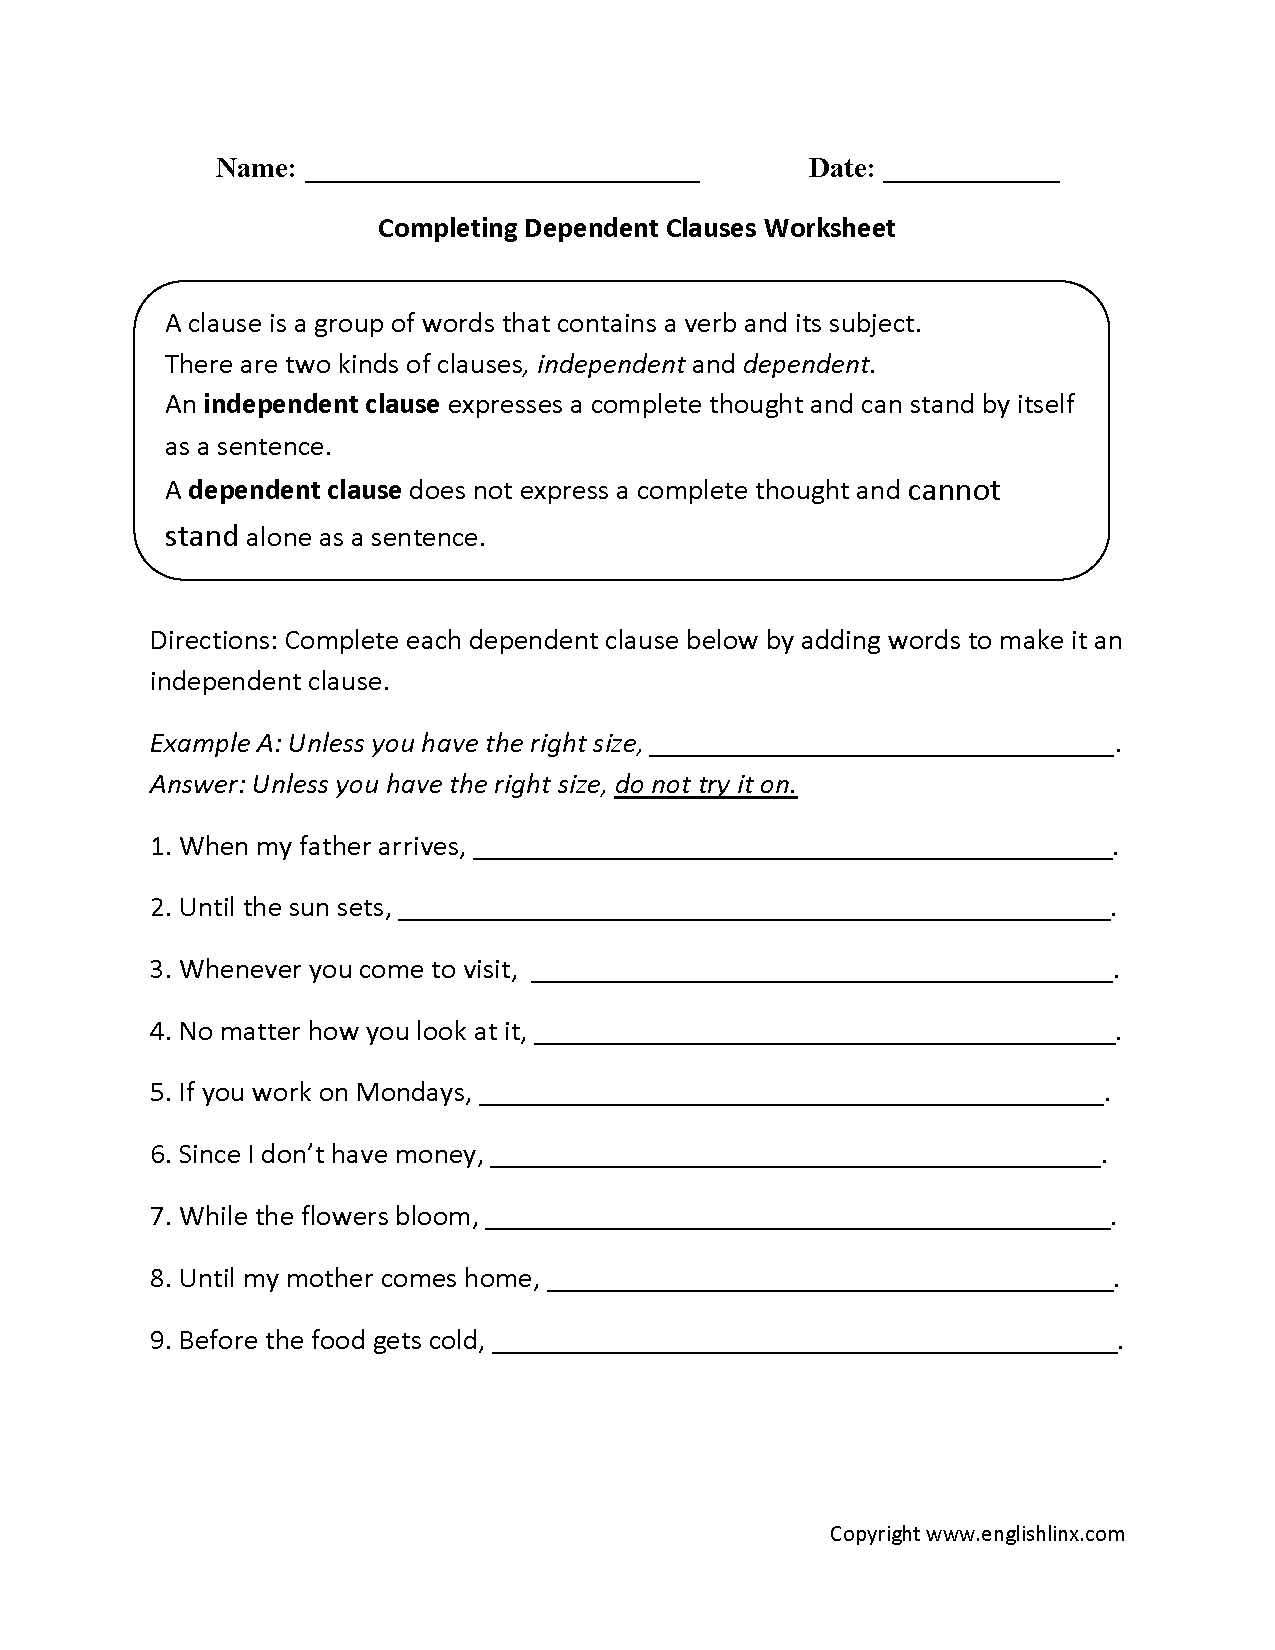 worksheet Clauses And Phrases Worksheets englishlinx com clauses worksheets completing dependent worksheet